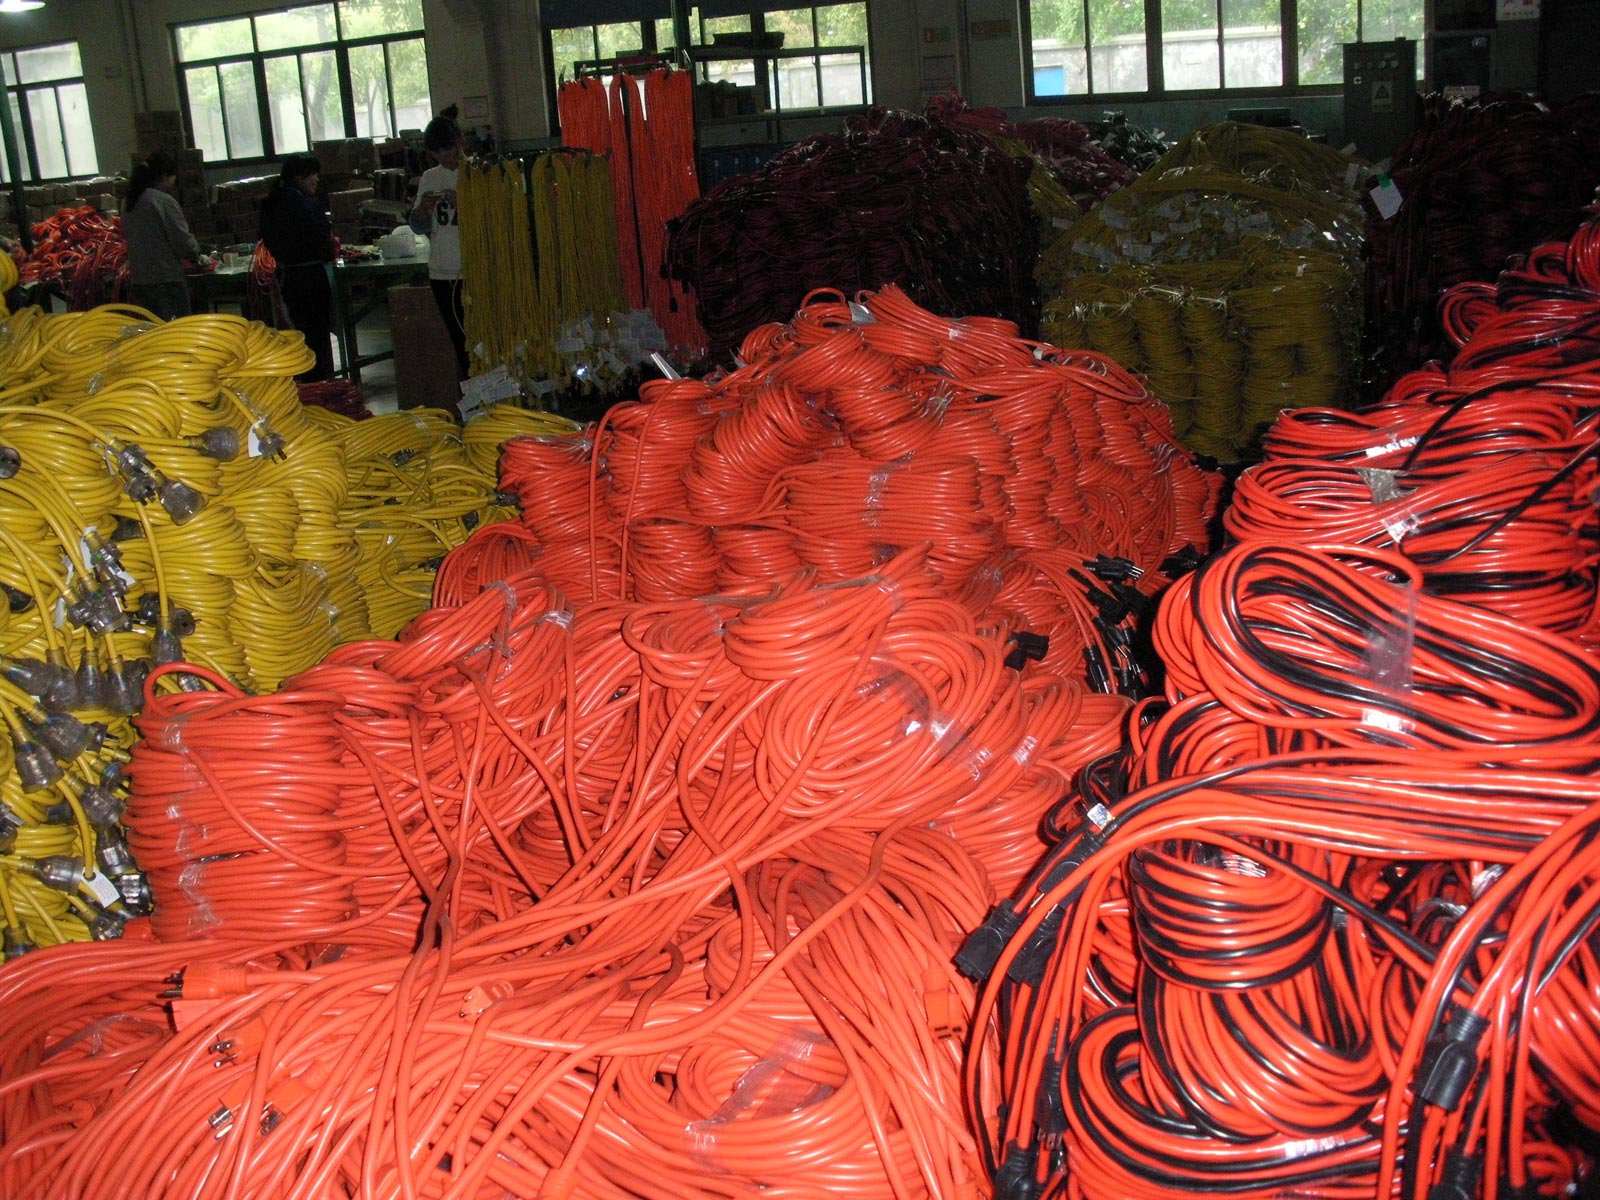 Outdoor extension cord manufacturer